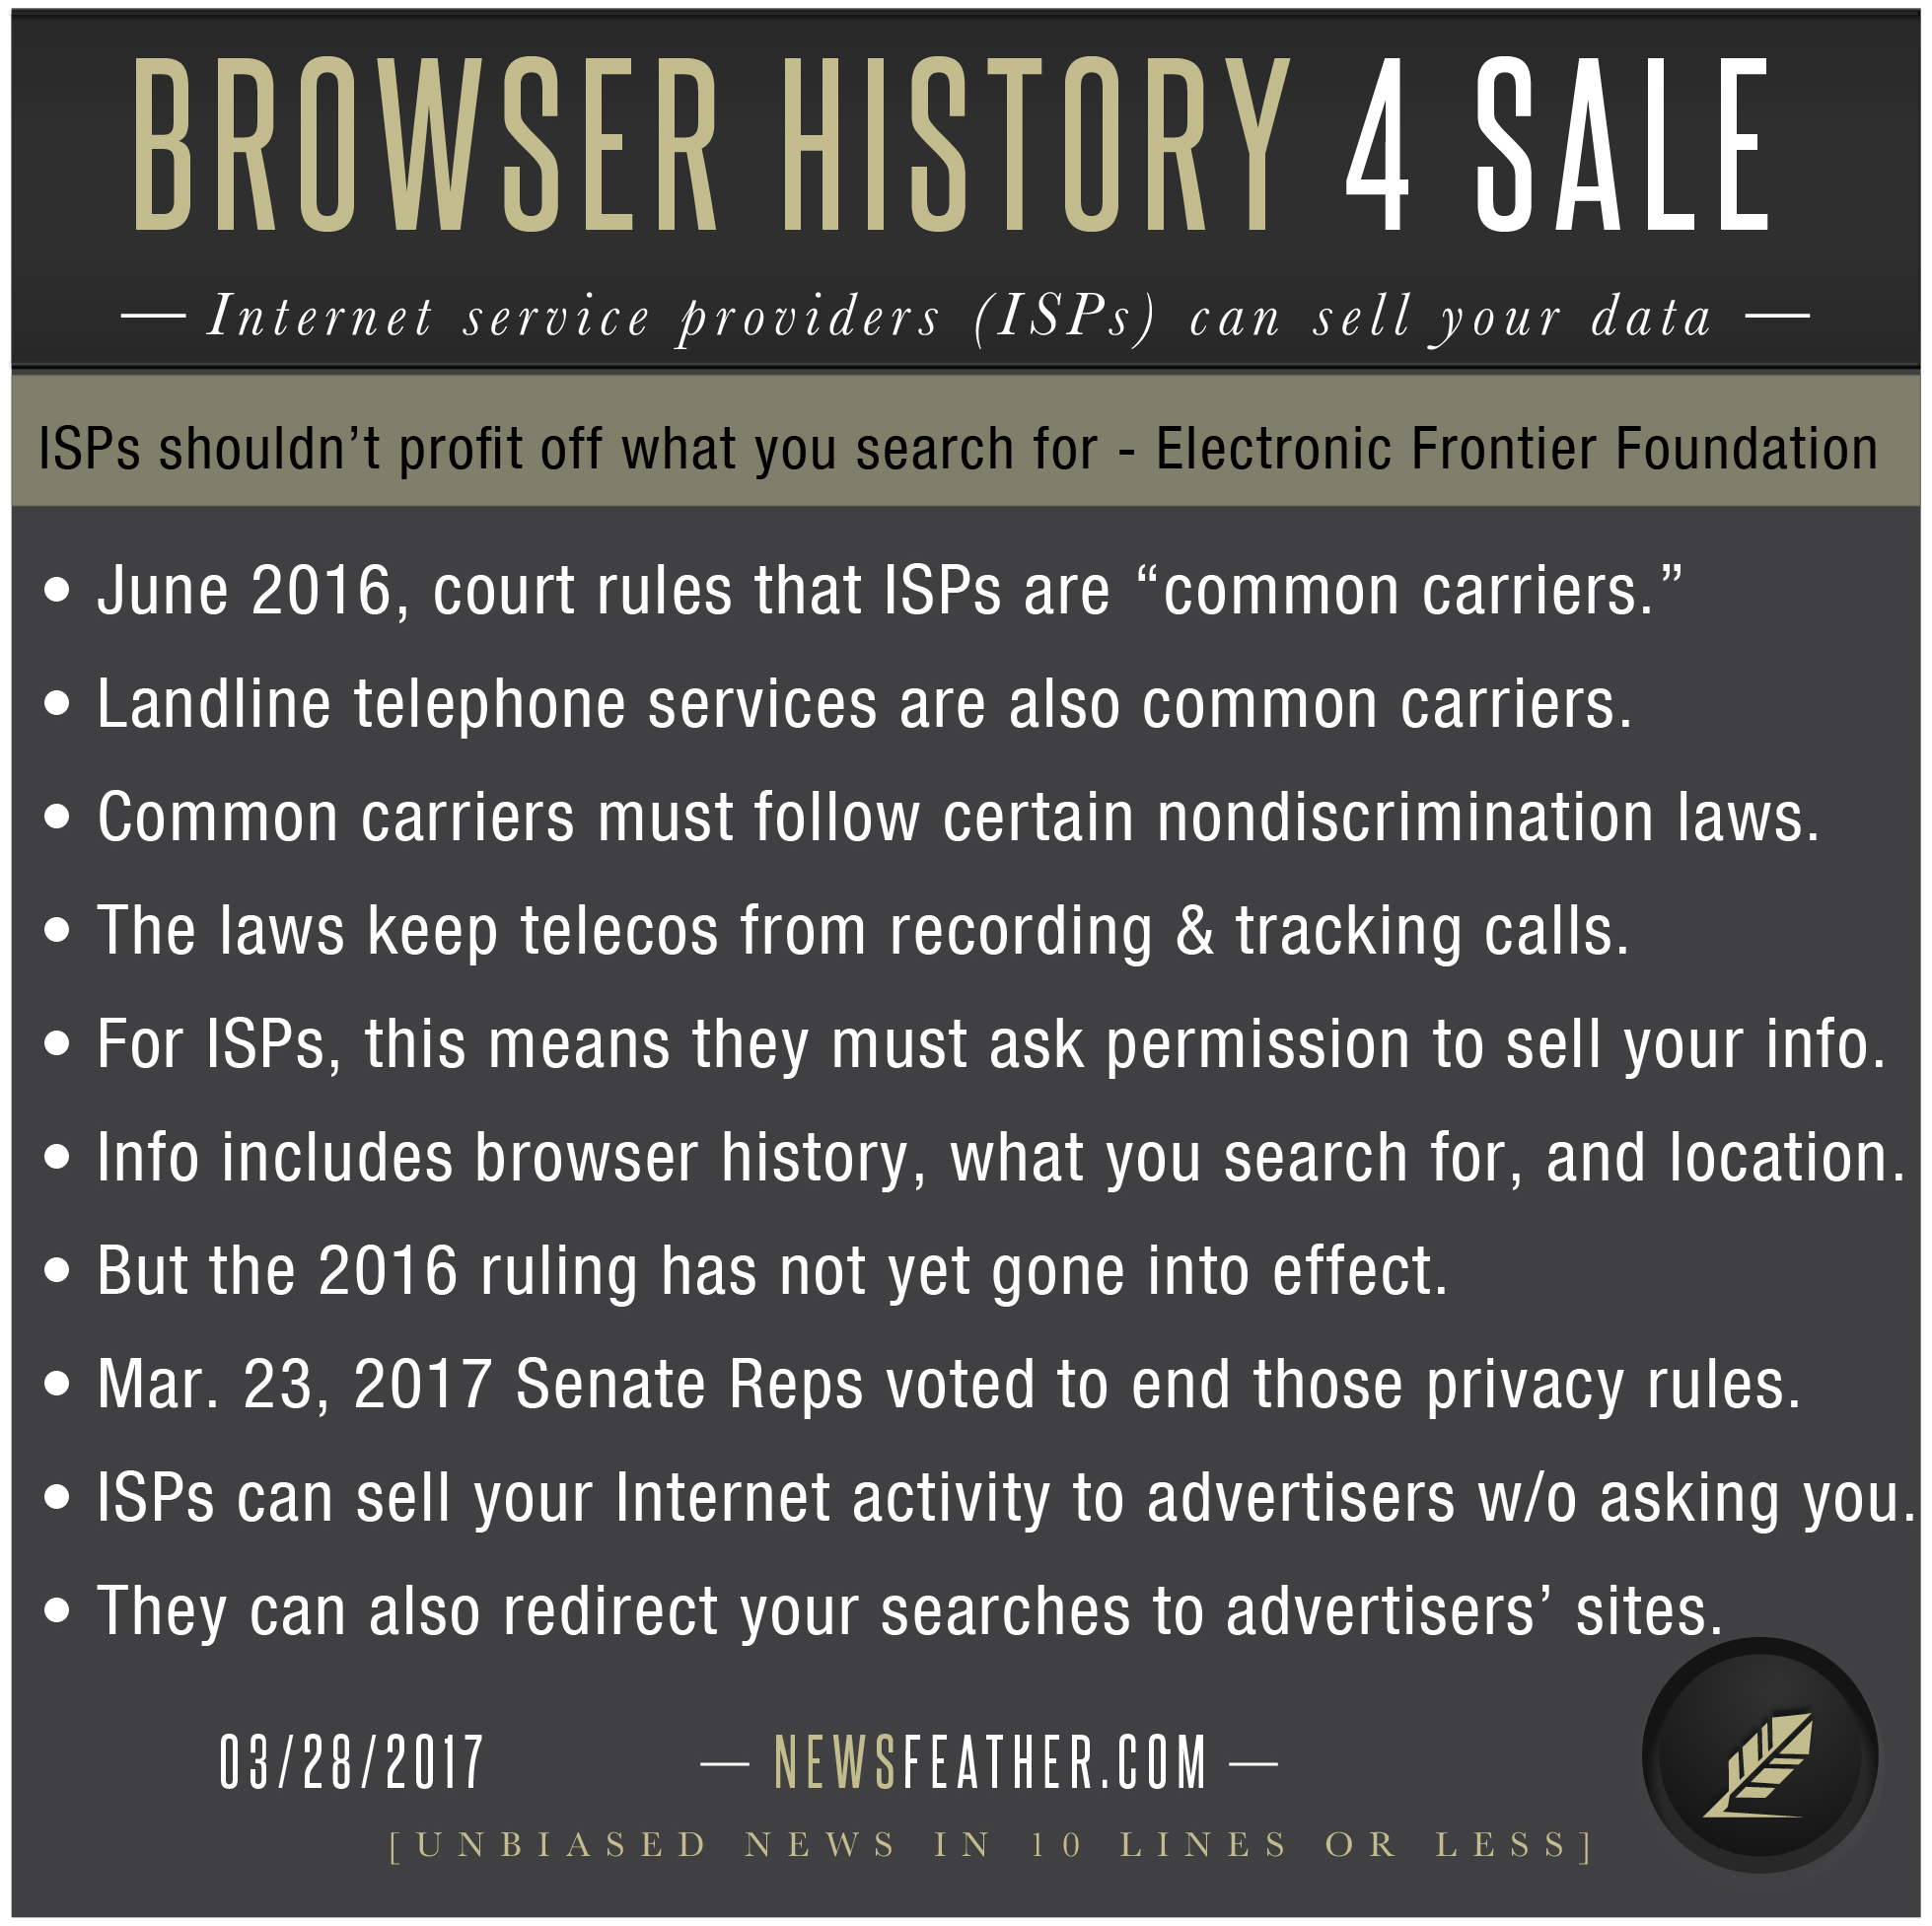 Senate Republicans voted to let your internet provider sell your browser history to advertisers without asking your permission.